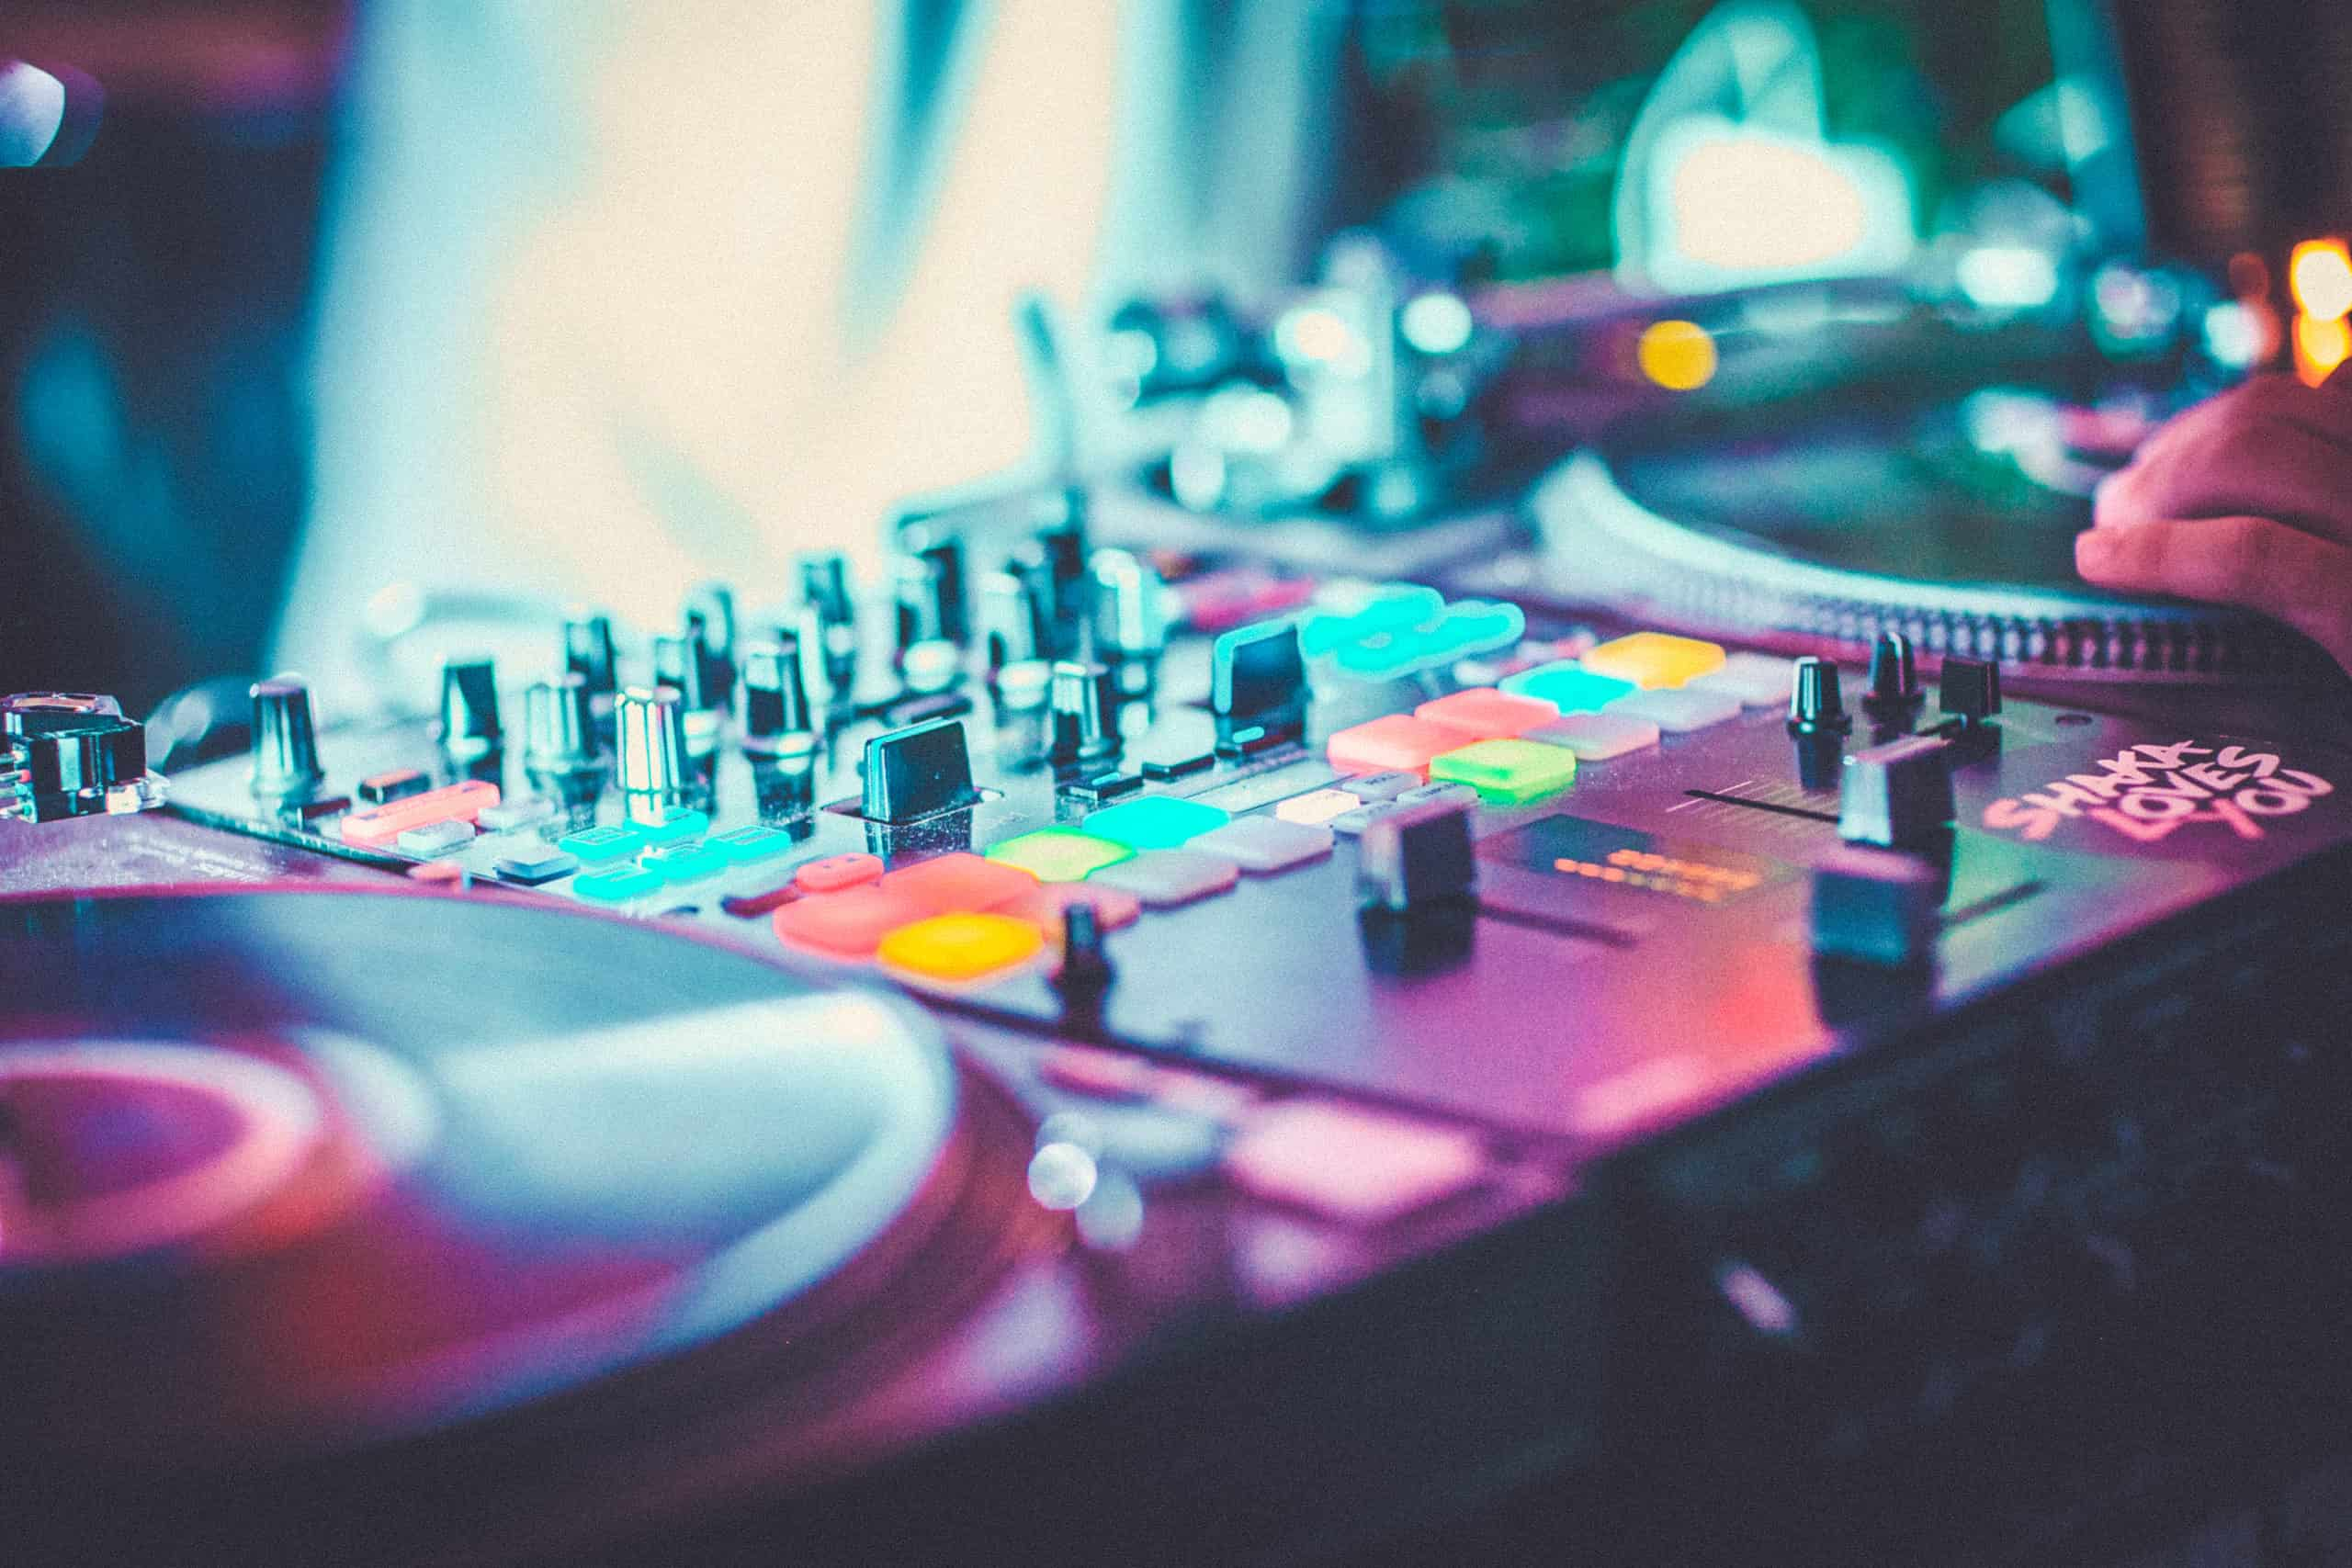 Close up of the decks at Camp Wildfire. A summer weekend break in a forest near London and Kent. An outdoor woodland retreat featuring adventure activities, live music, DJs, parties and camping. Half summer adventure activity camp, half music festival, for adults only.